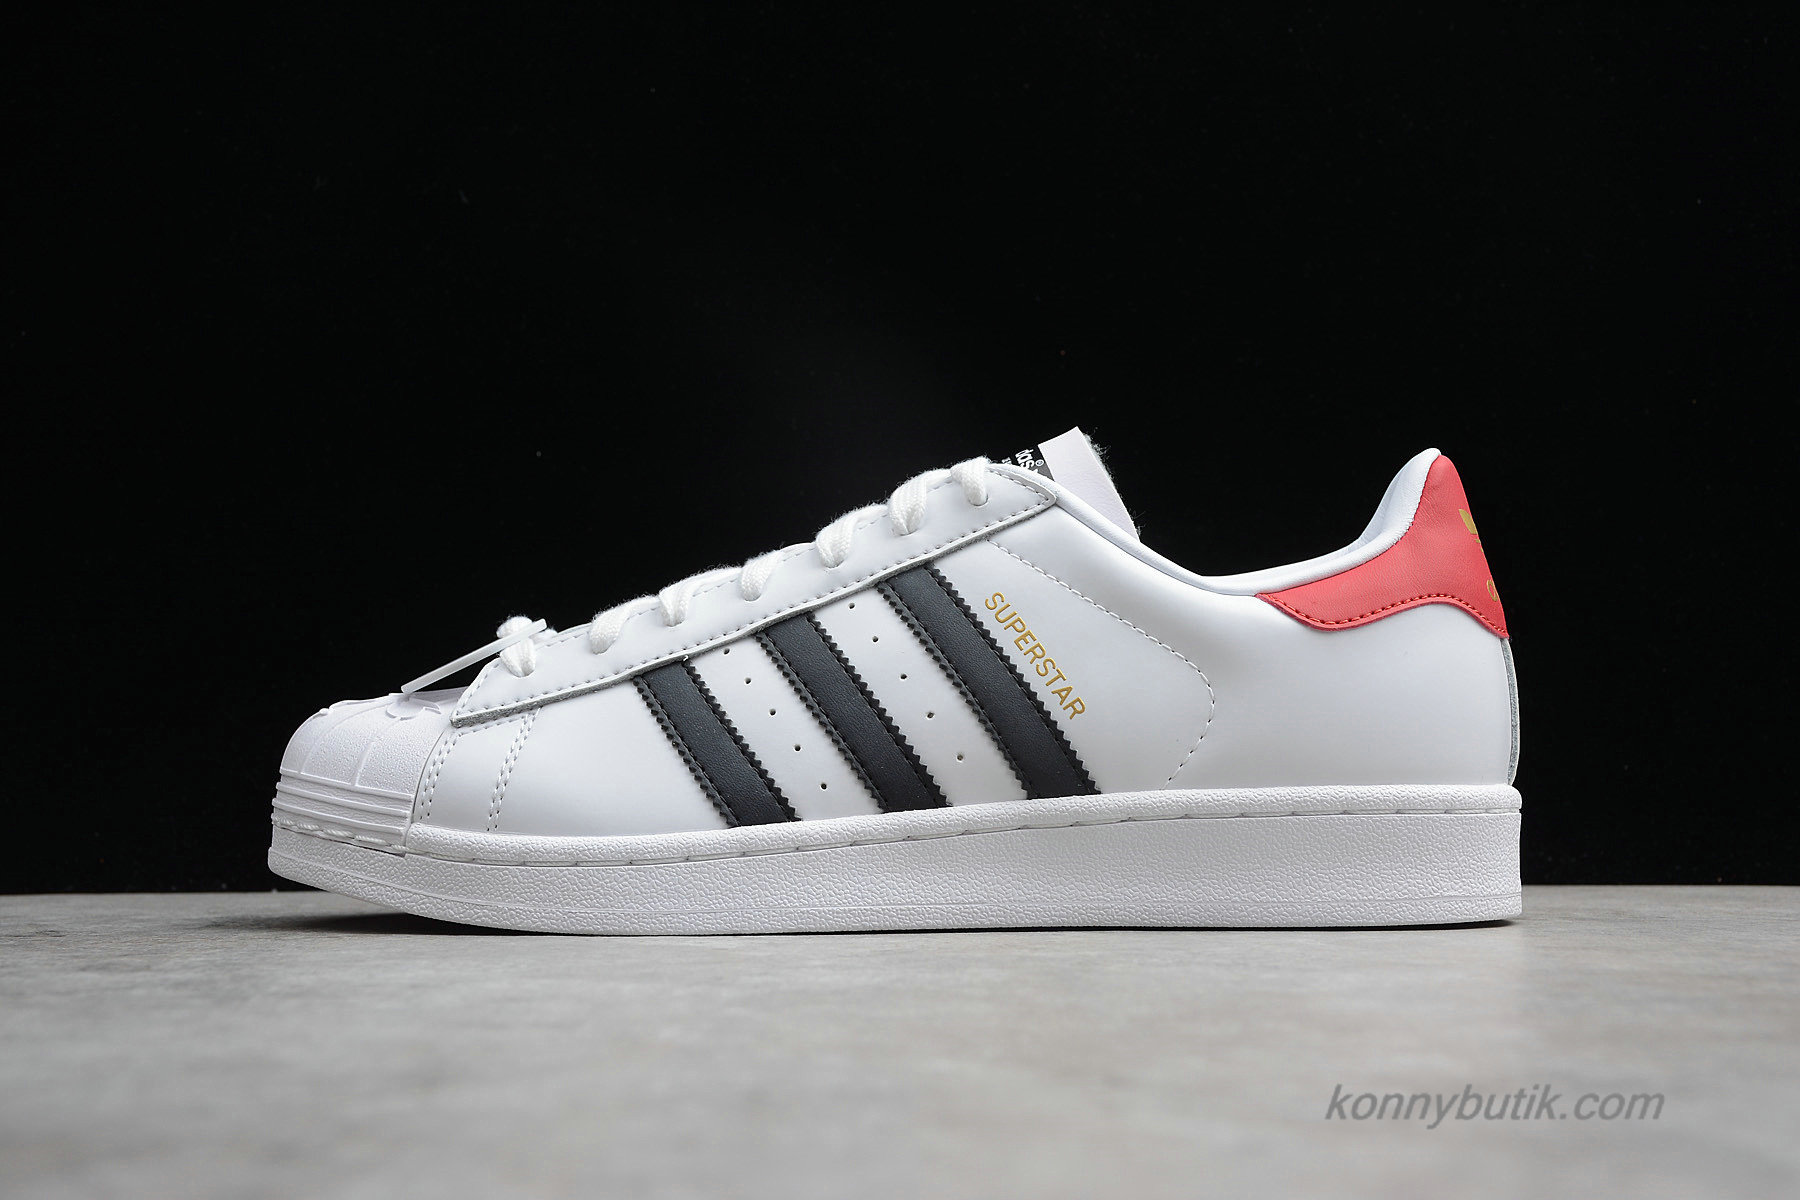 Adidas Originals Superstar Nigo Bearfoot Unisex Sko Hvid / Sort / Rød (S75552)